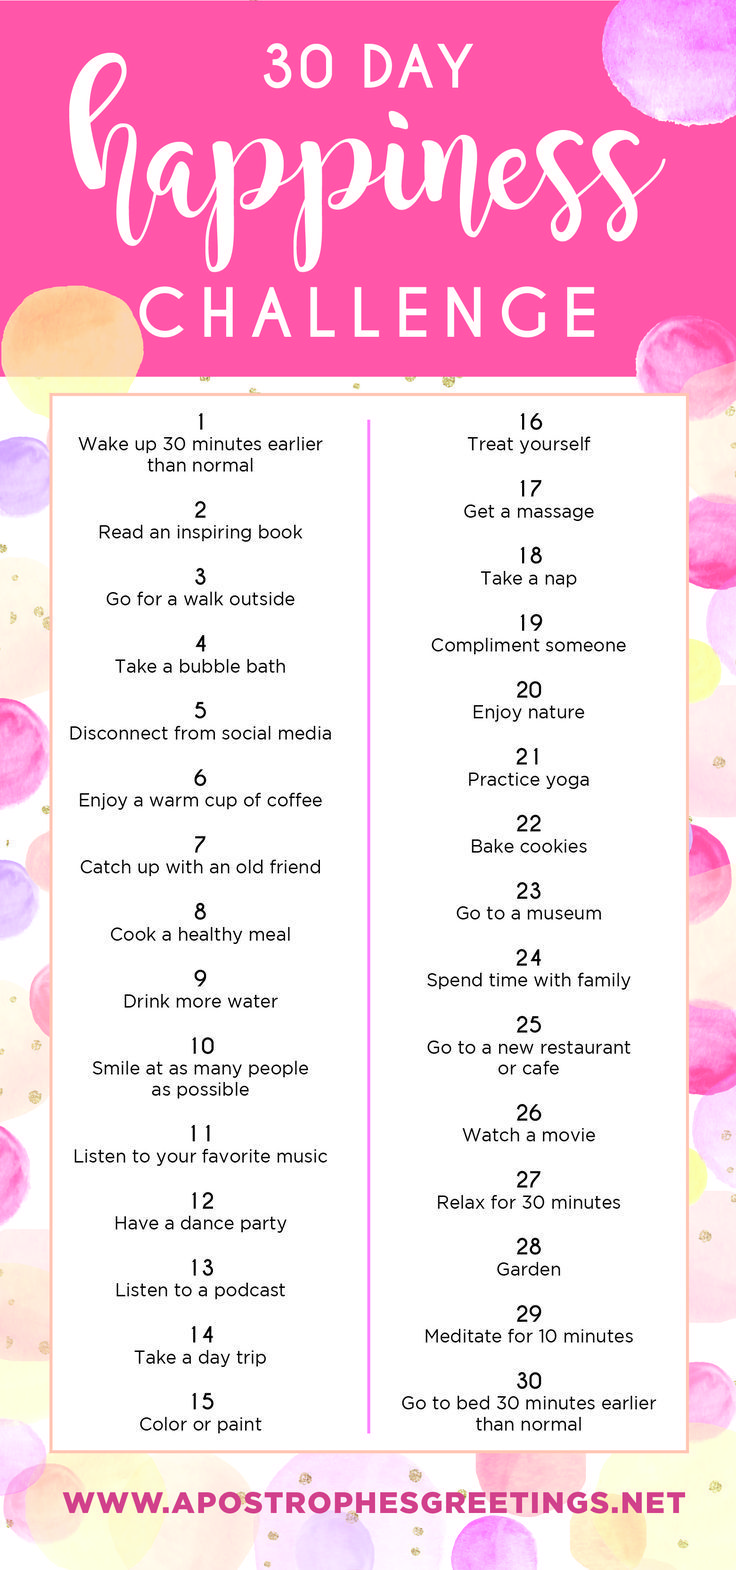 Take the 30 Day Happiness Challenge! Easy ways to feel happier and enjoy life.